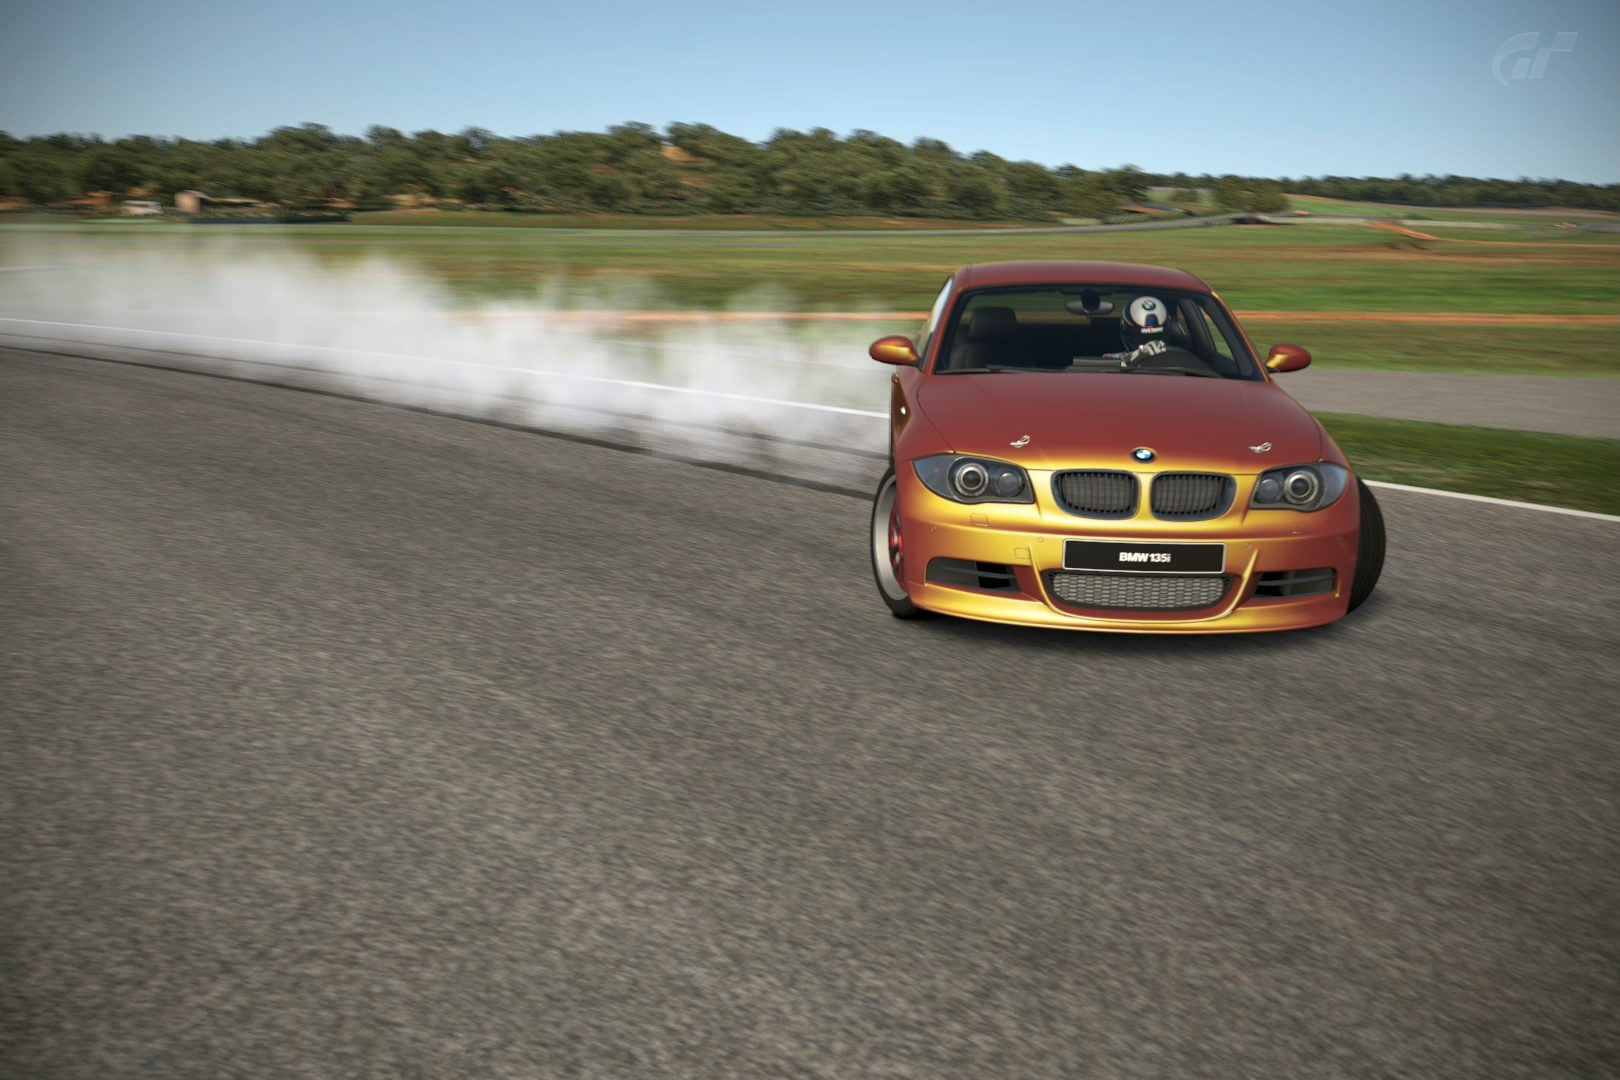 BMW135iAscari Full Track.jpg